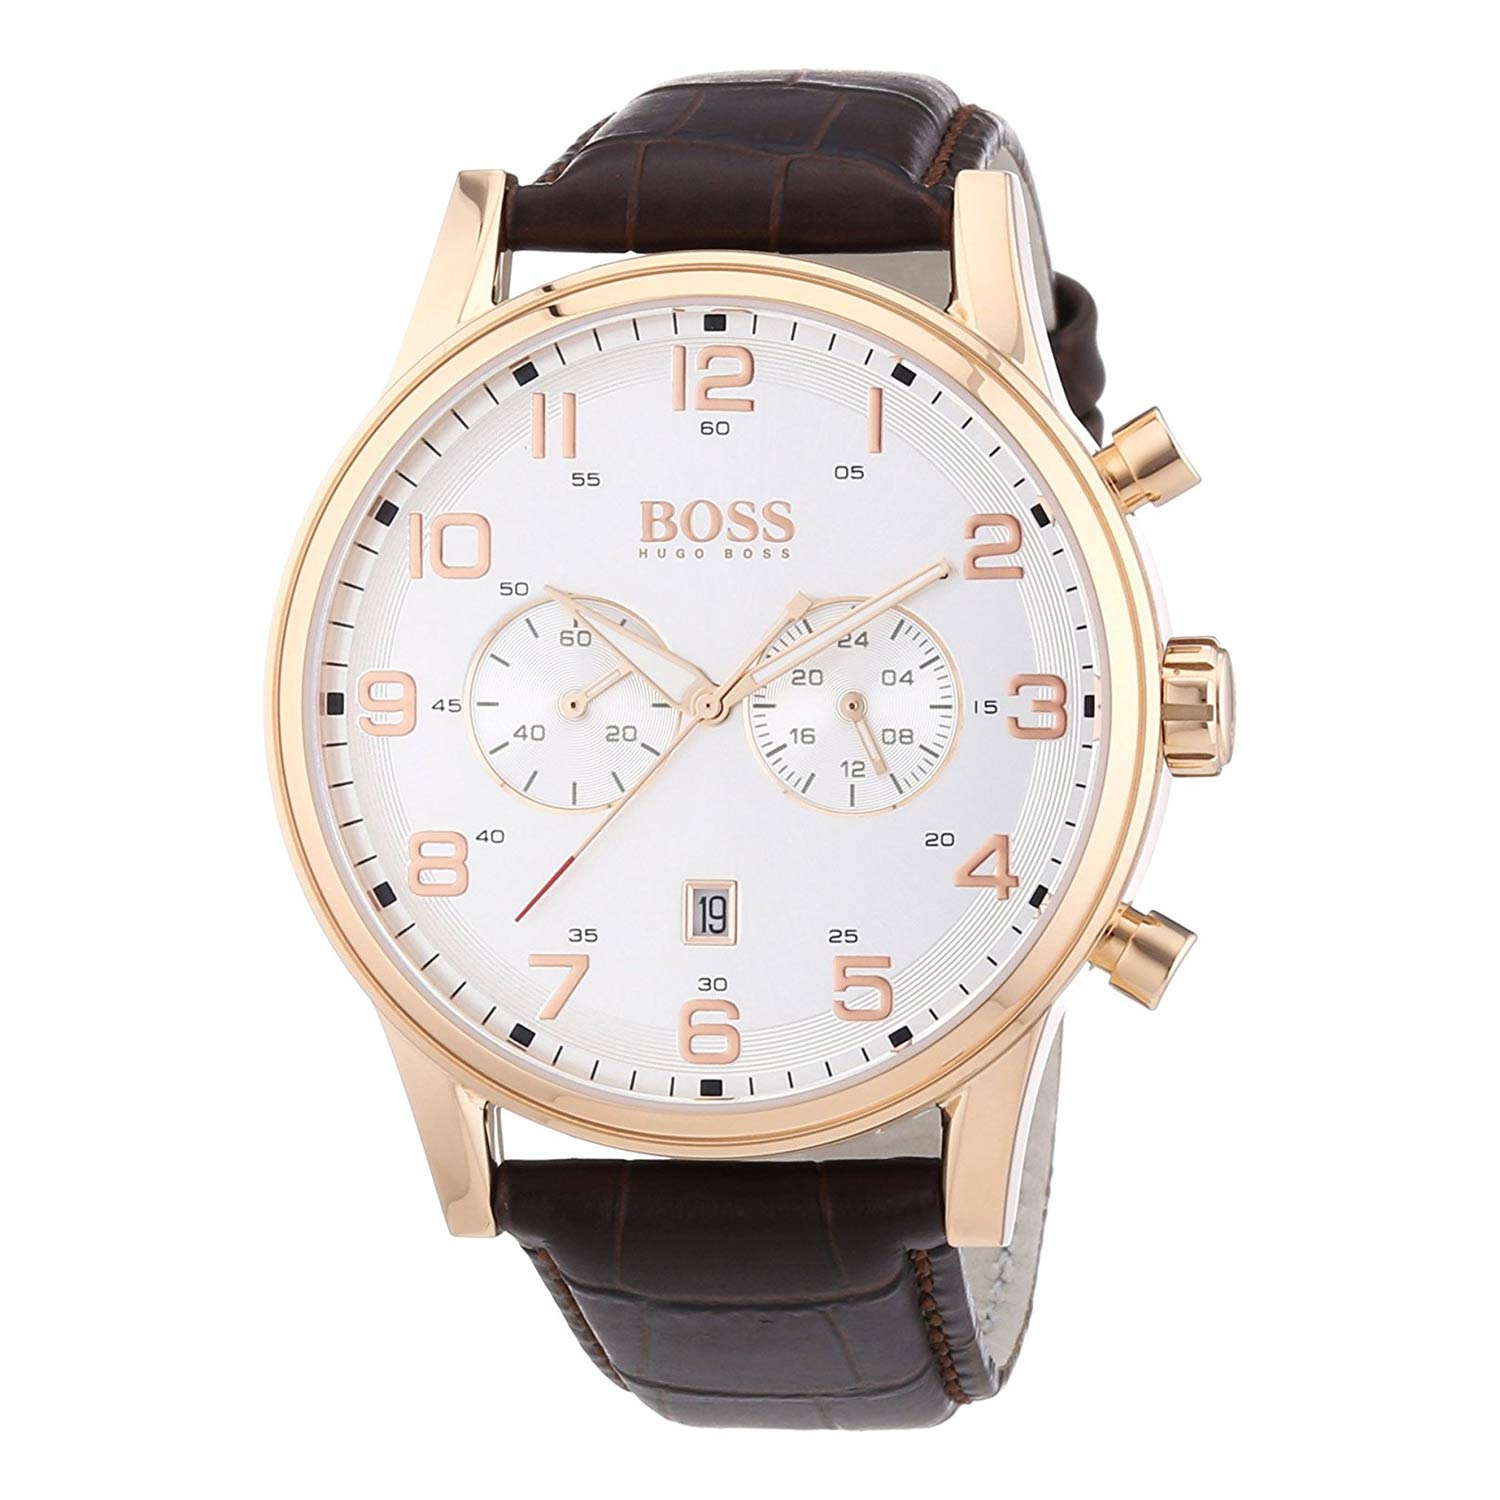 Hugo-Boss-1512921-Herrenuhr-in-Gold-Weiss-mit-Kalbslederarmband